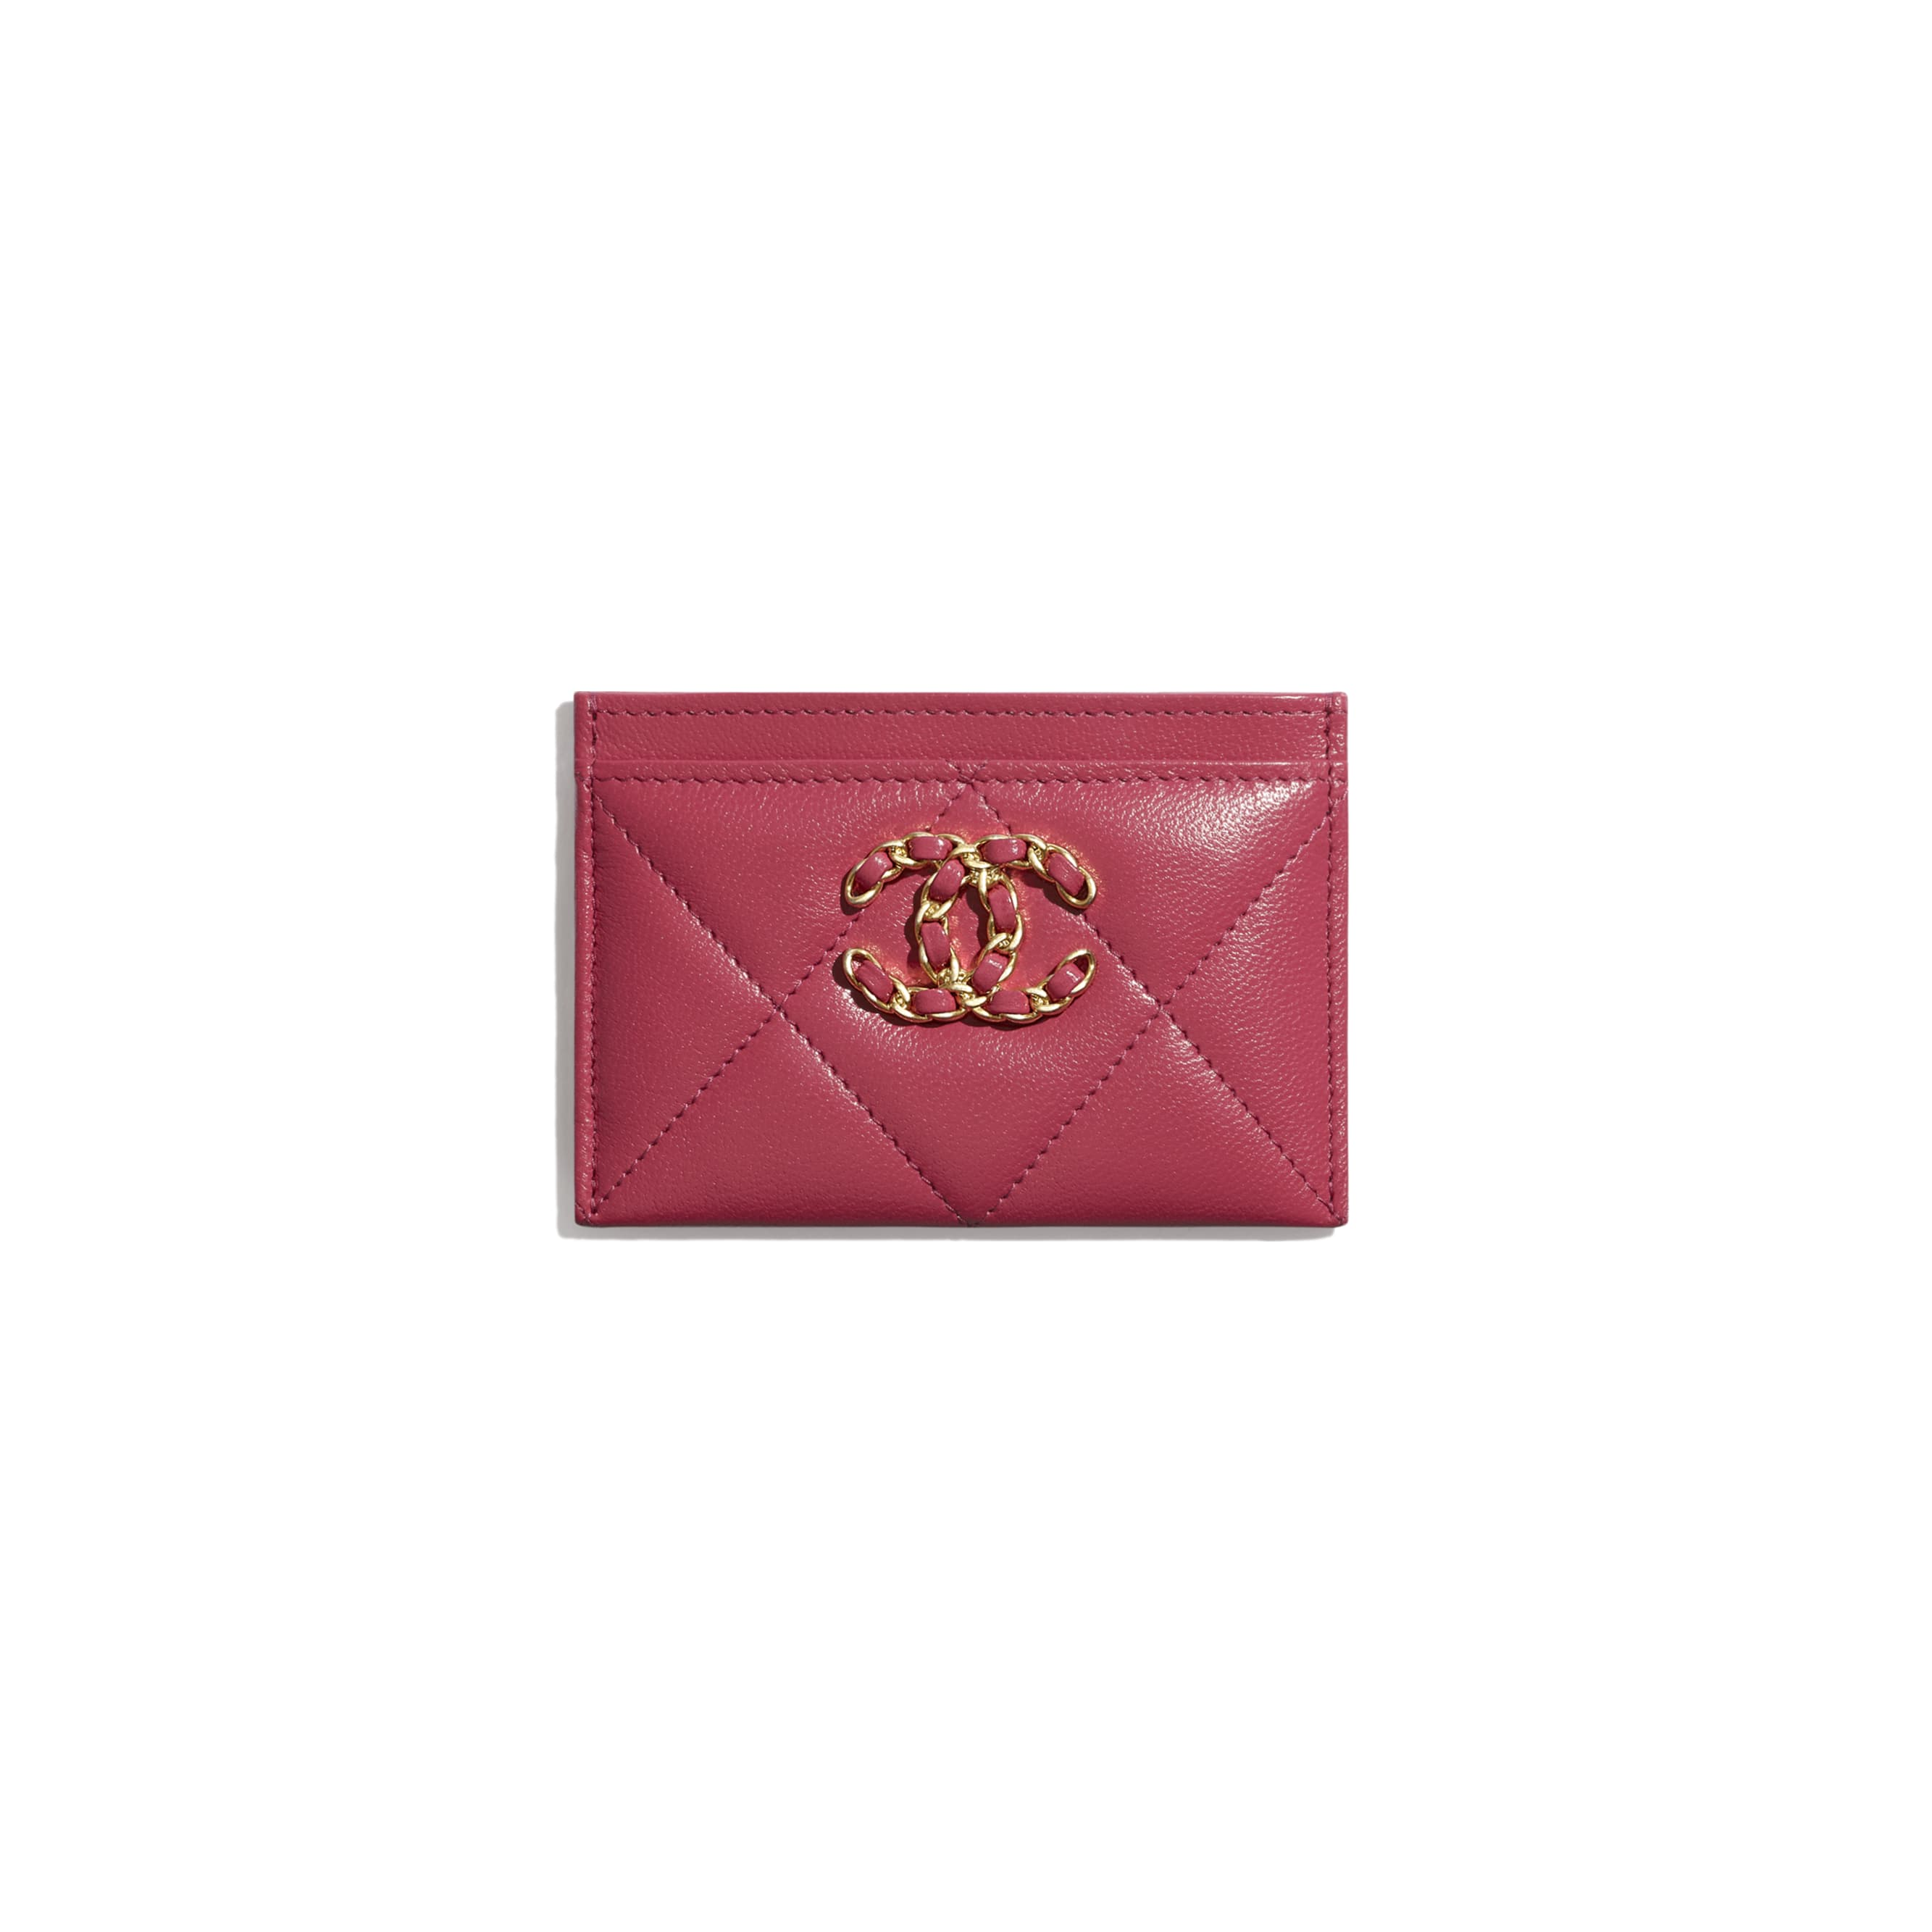 CHANEL 19 Card Holder - Dark Pink - Lambskin, Gold-Tone, Silver-Tone & Ruthenium-Finish Metal - CHANEL - Default view - see standard sized version